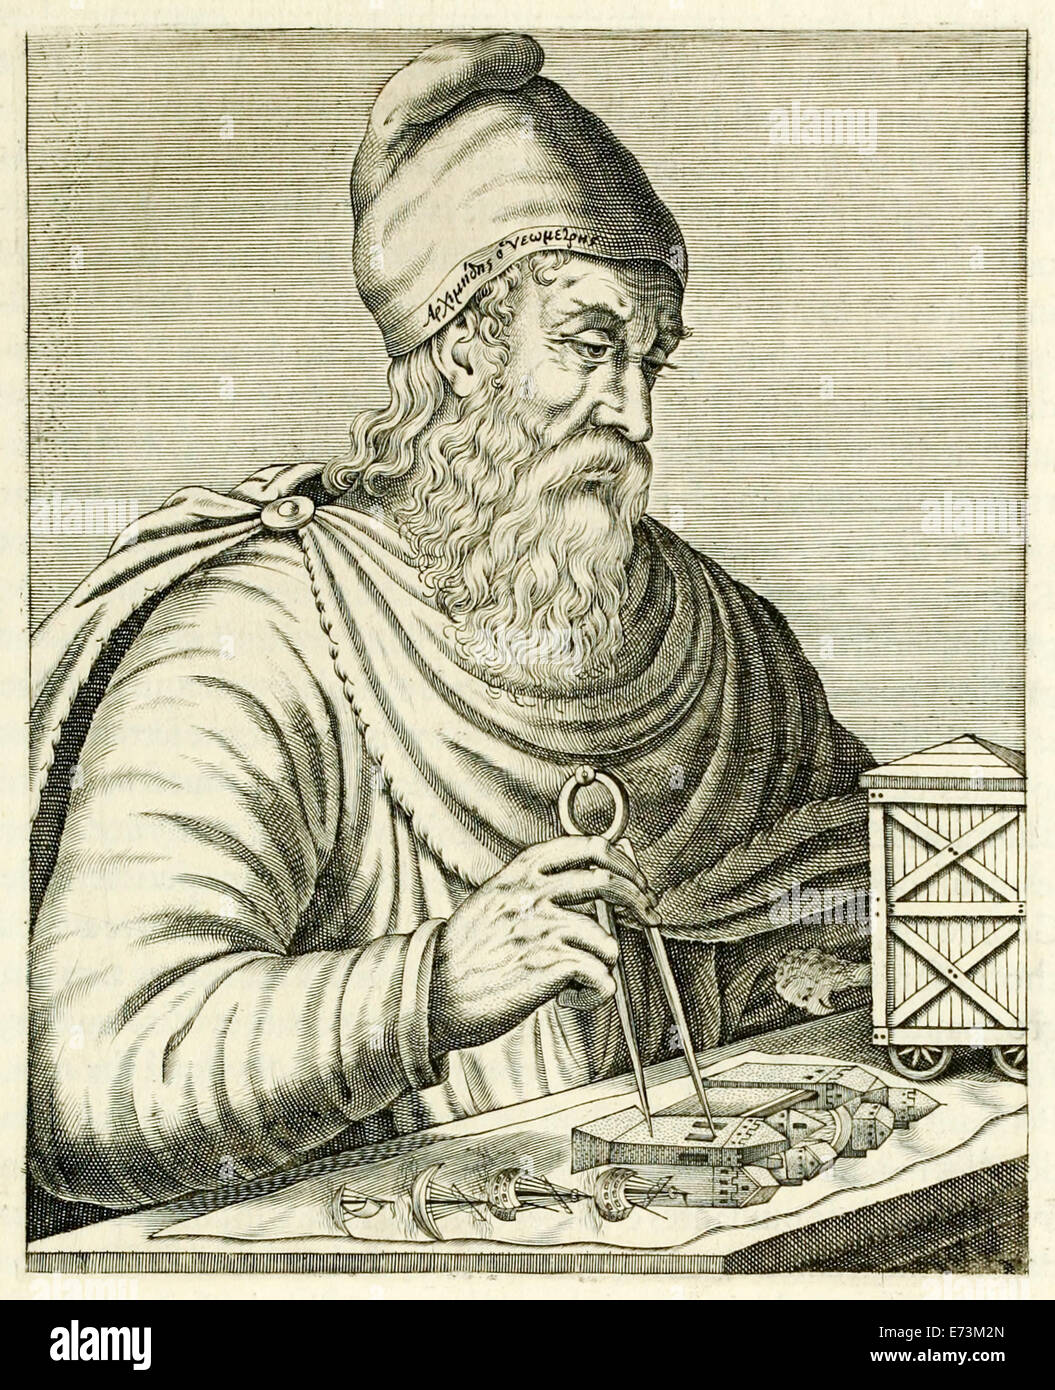 Archimedes Stock Photos & Archimedes Stock Images - Alamy  Archimedes Stoc...